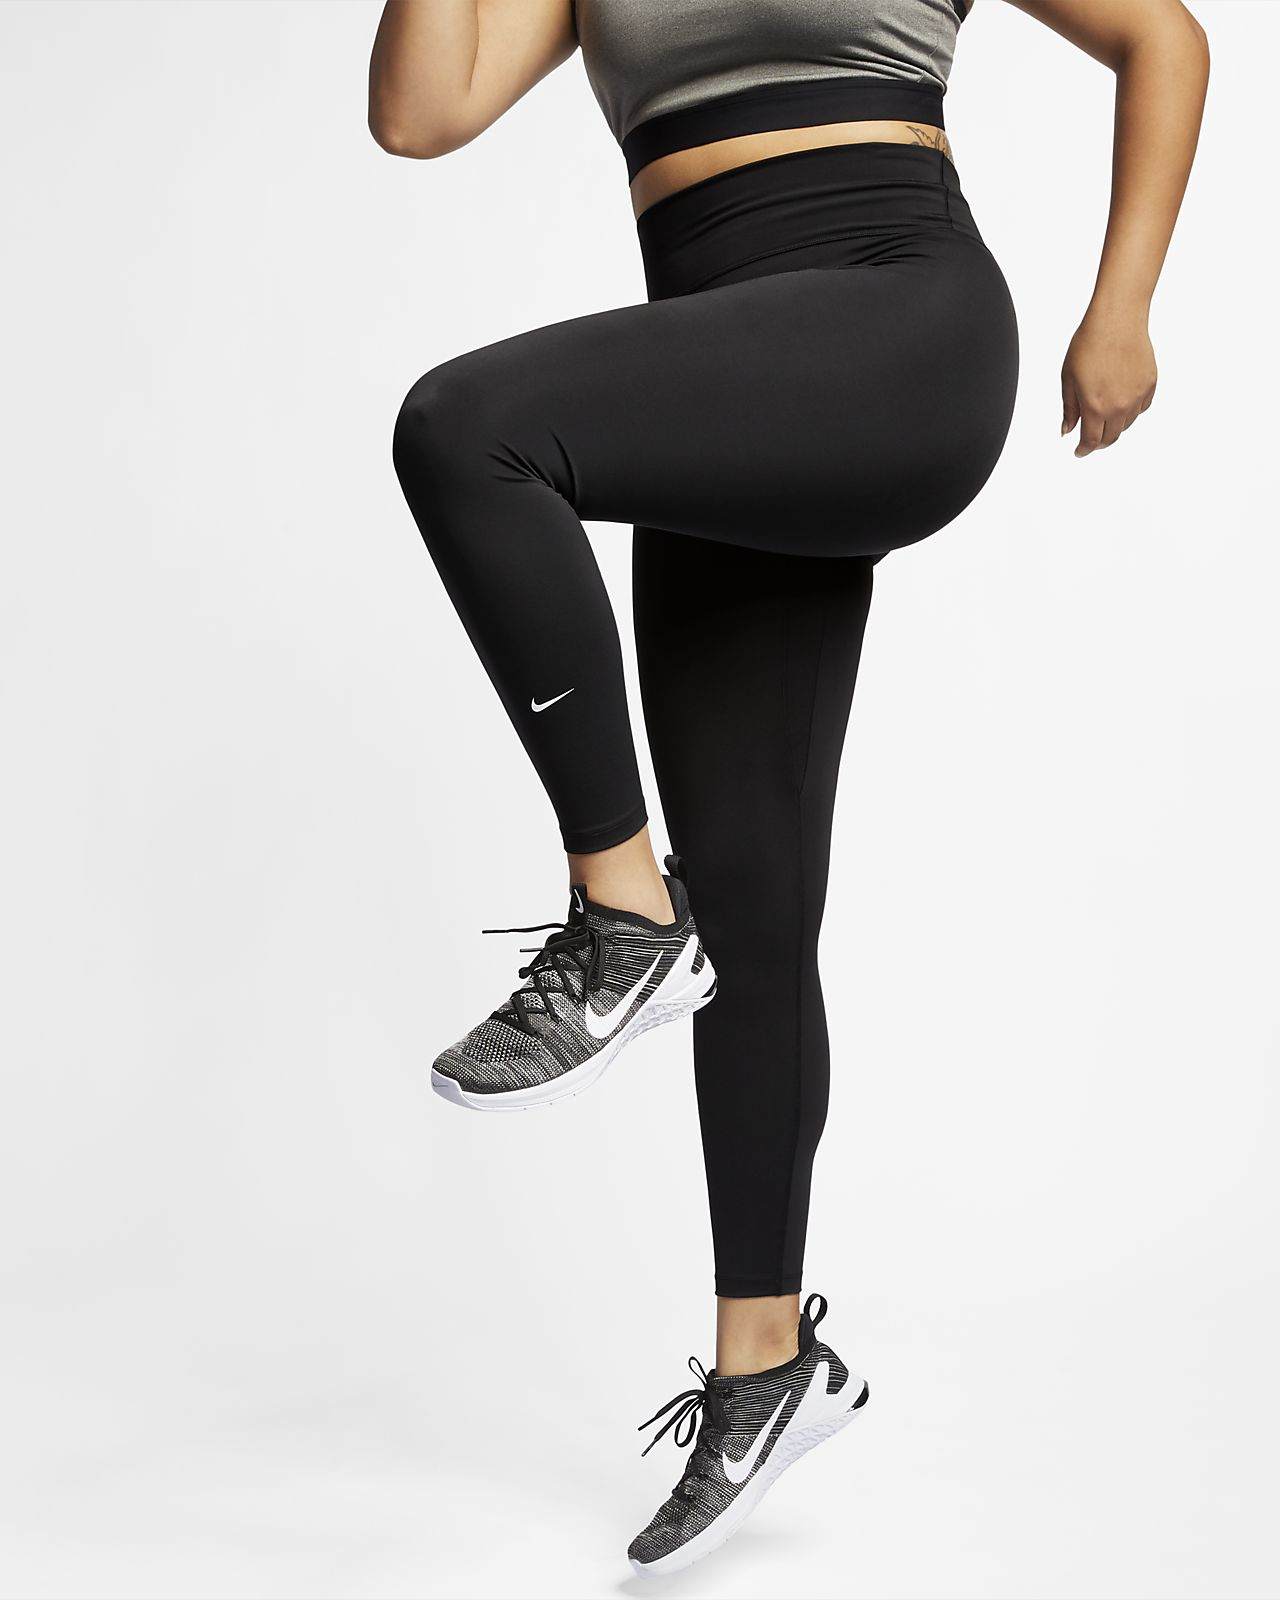 0a9ebfeed5 Nike One Women s Tights (Plus Size). Nike.com GB